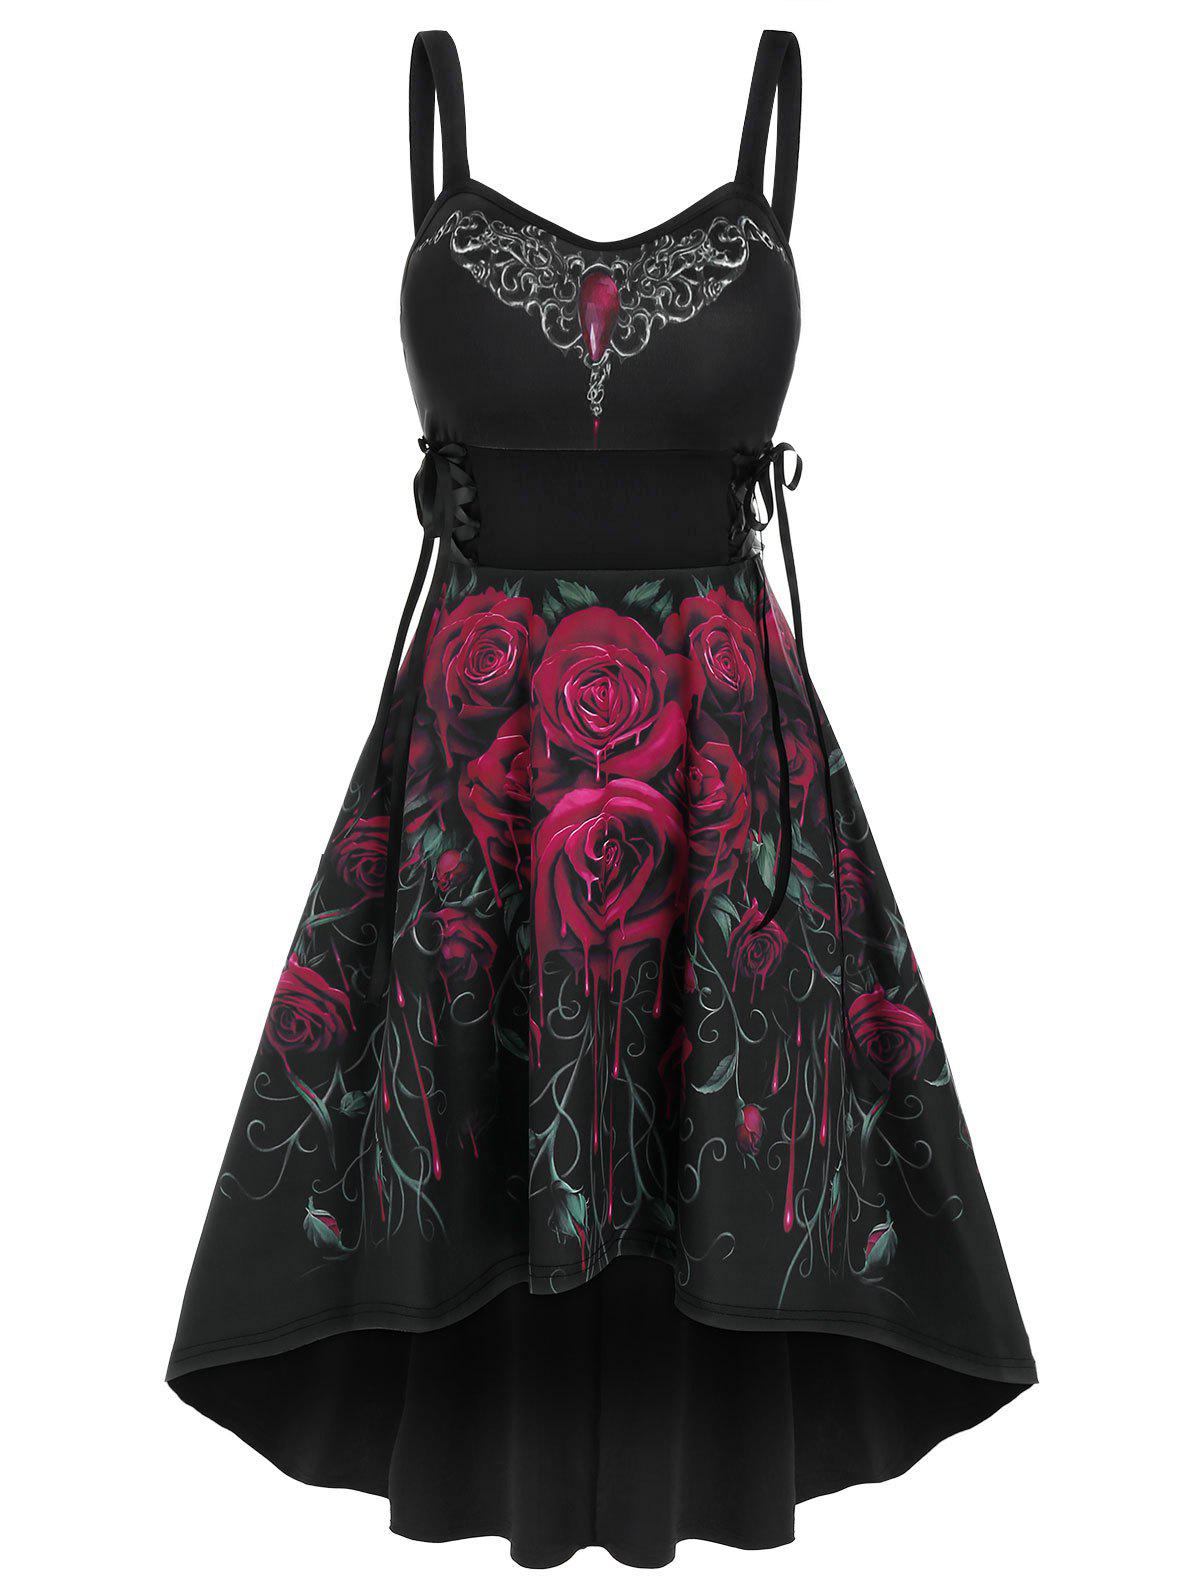 Sleeveless Flower Print Lace-up High Low Gothic Dress - BLACK S